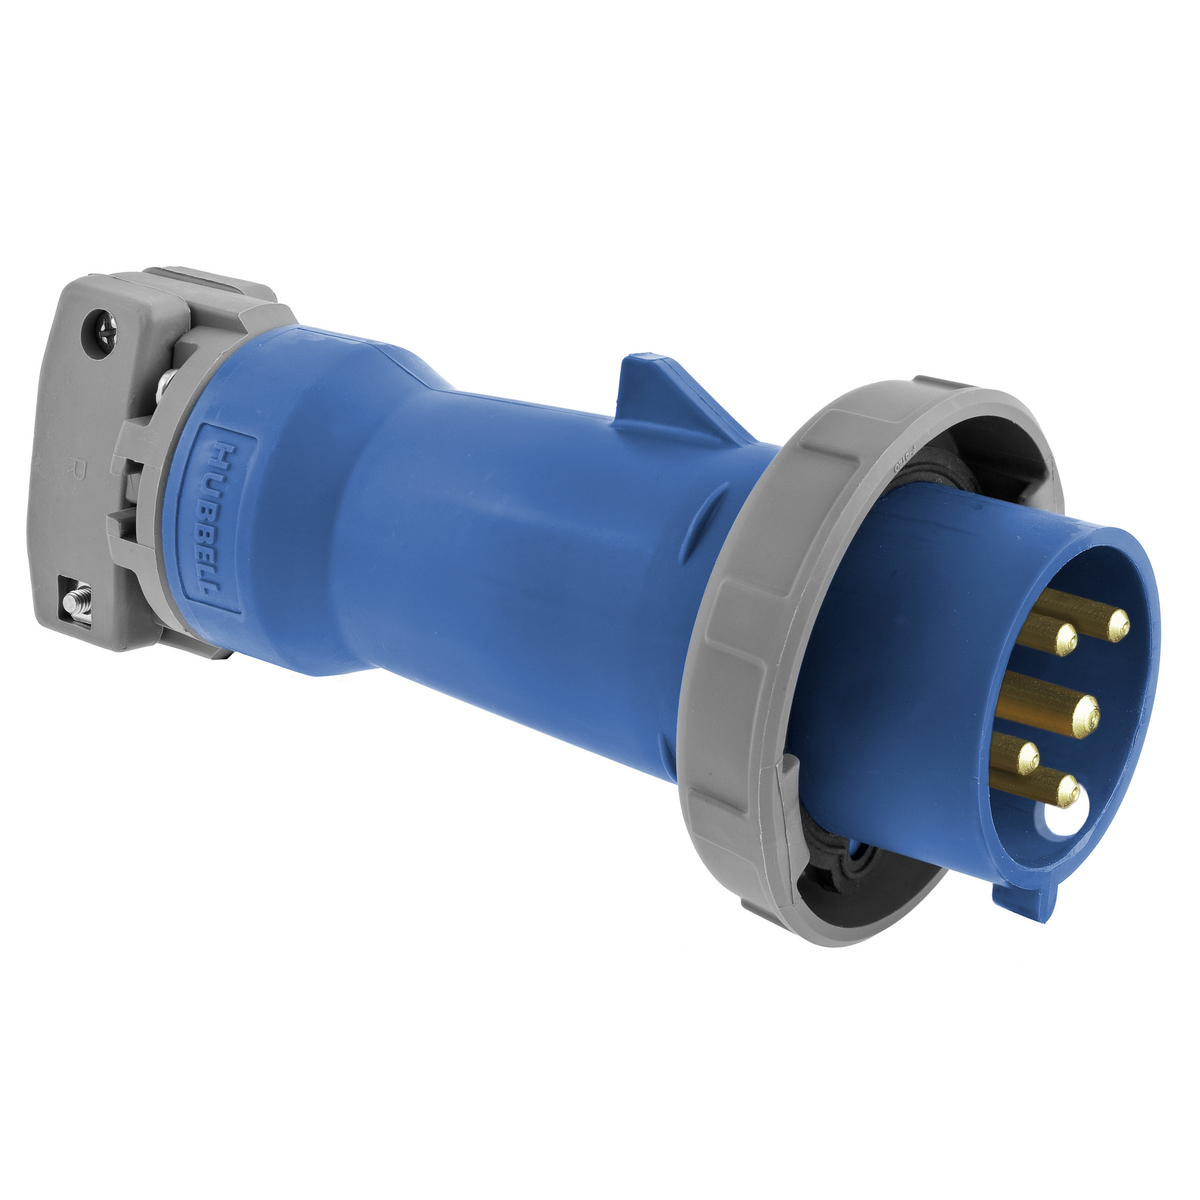 Hubbell HBL520P9W 20 Amp 120/208 Volt 4-Pole 5-Wire Blue Watertight IEC Pin and Sleeve Plug